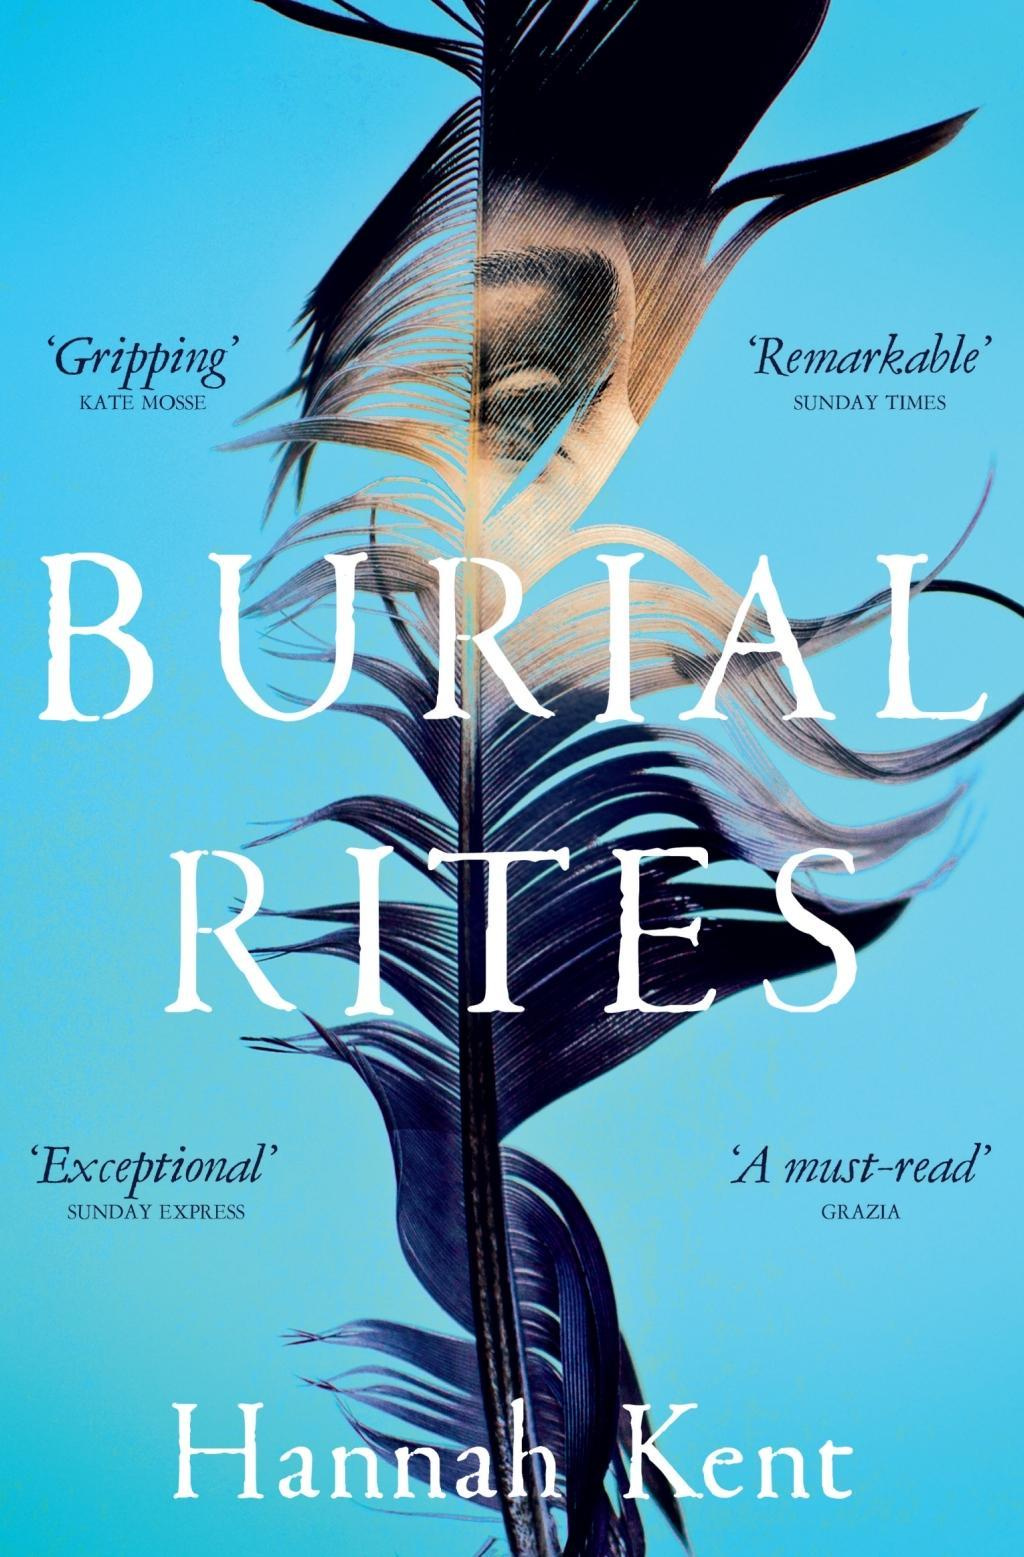 Burial Rites by Hannah Kent, ISBN: 9781447233176